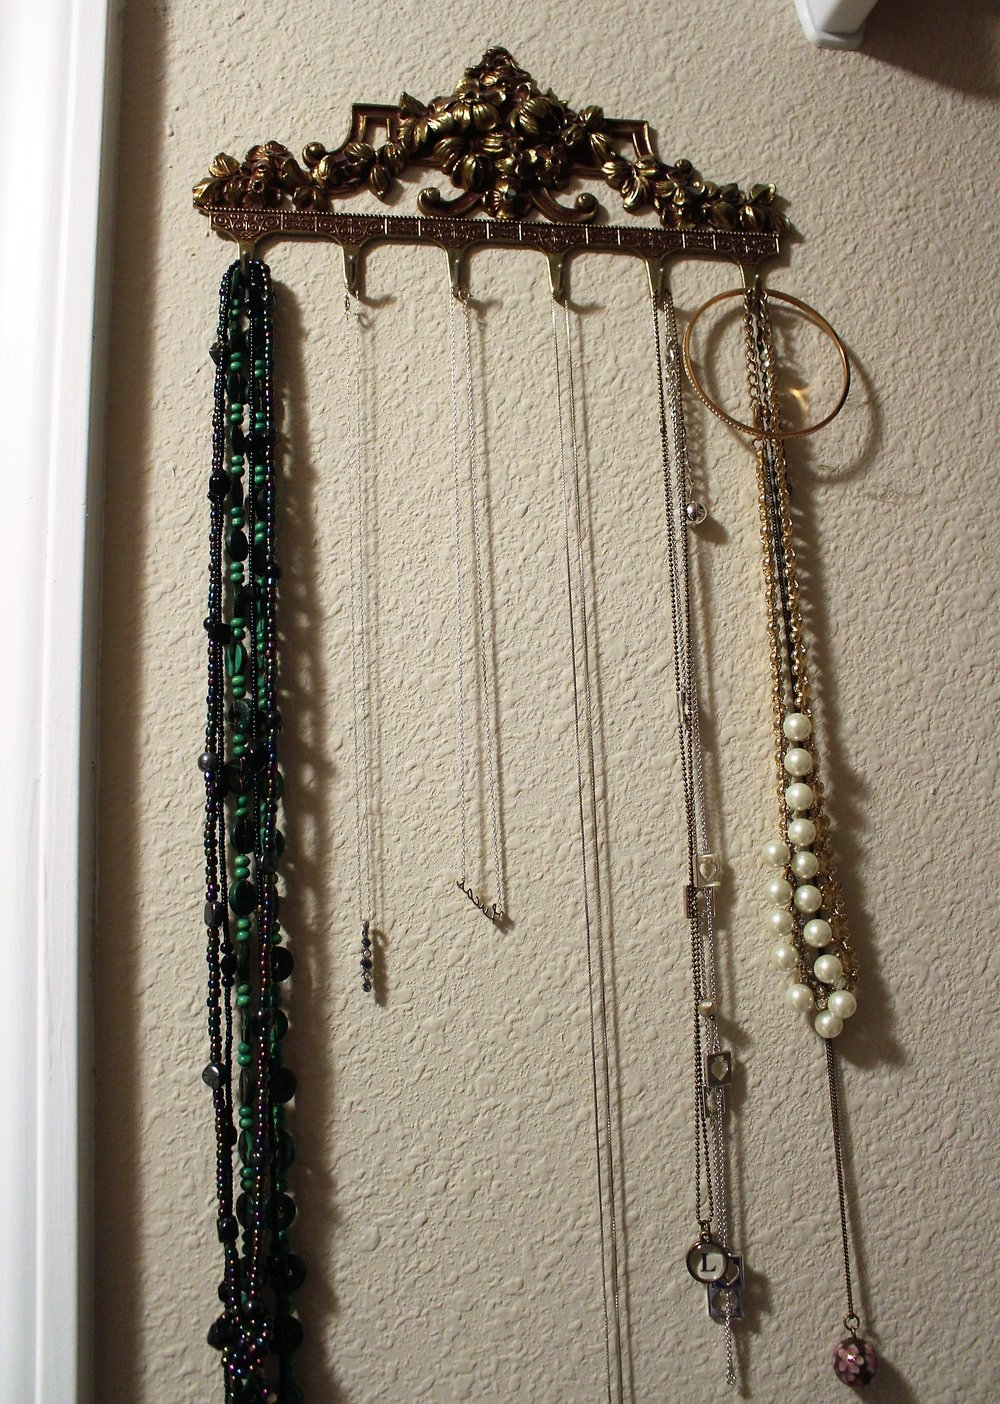 I use an antique brass key holder that used to be my great grandmothers to keep my long necklaces together.